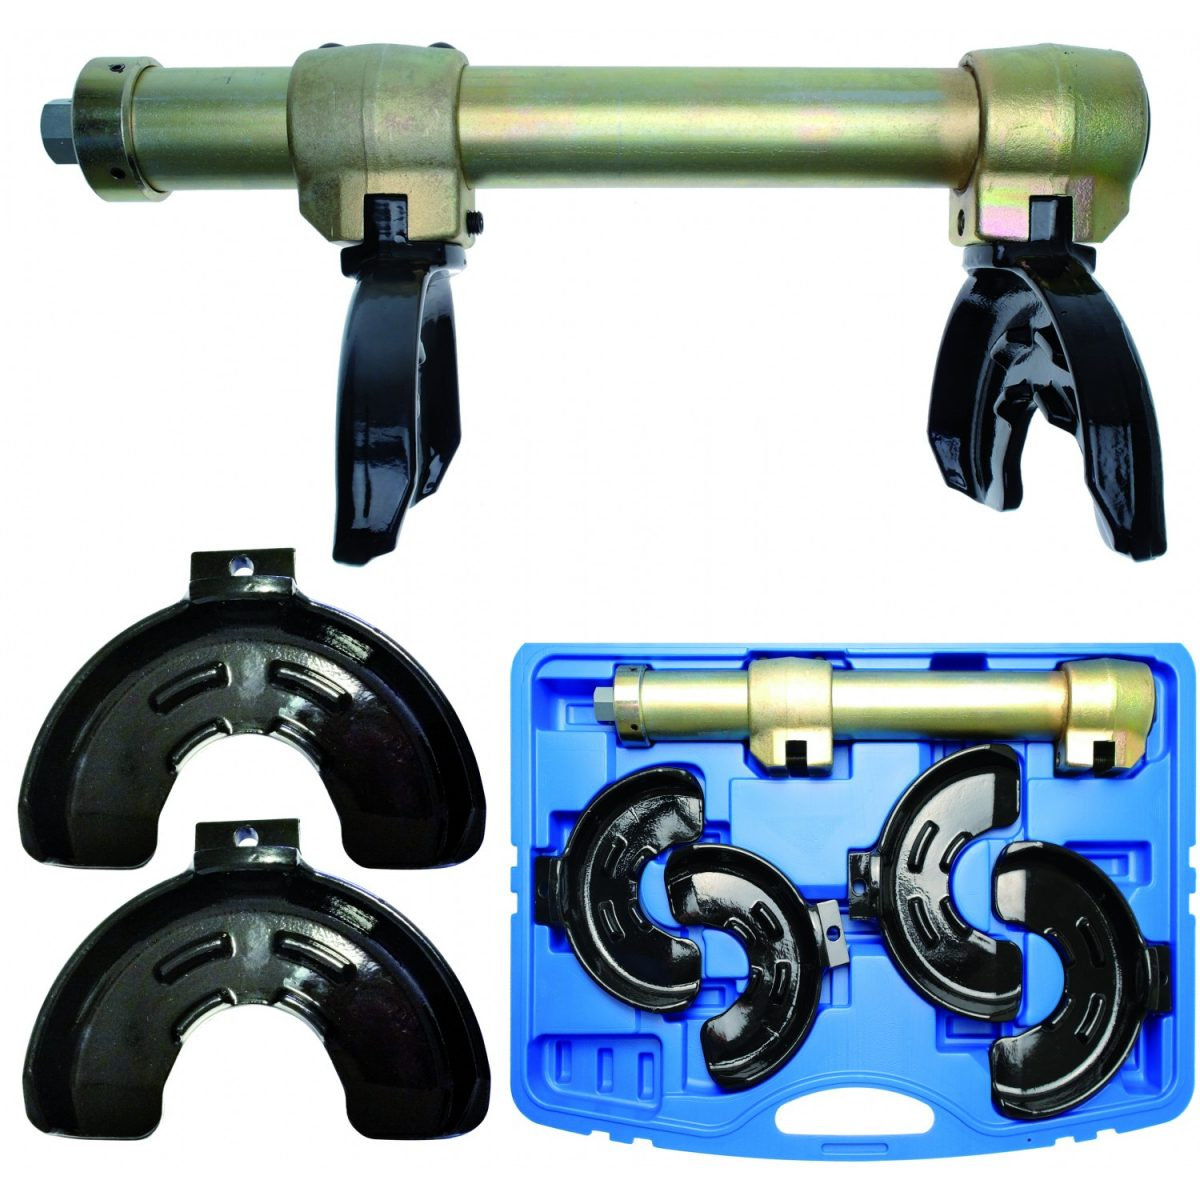 Spring Compressors for MC Pherson Strut (999)